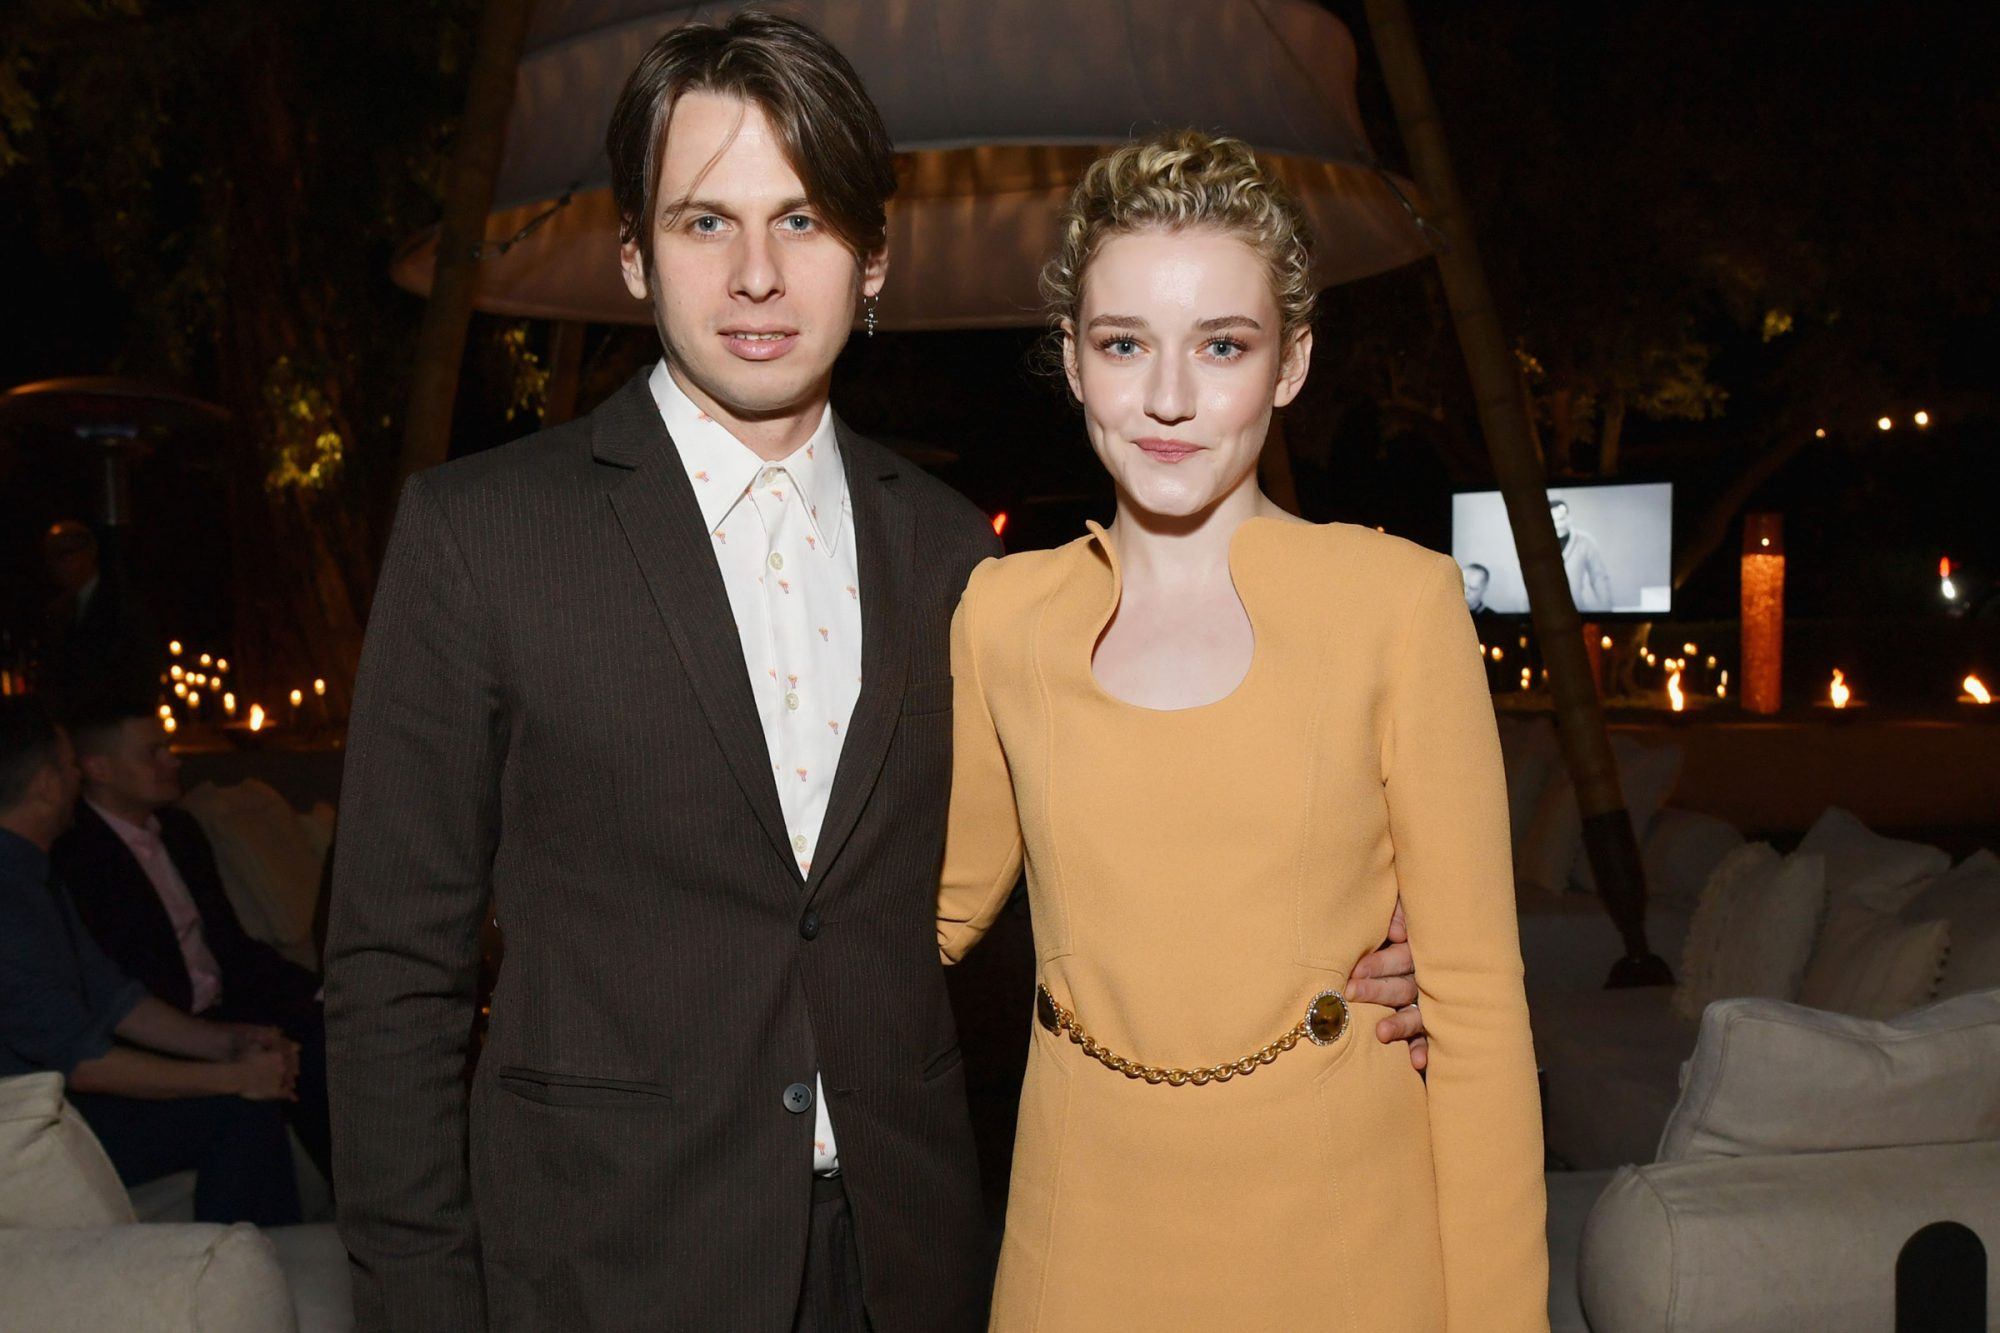 Julia Garner (R) and Mark Foster